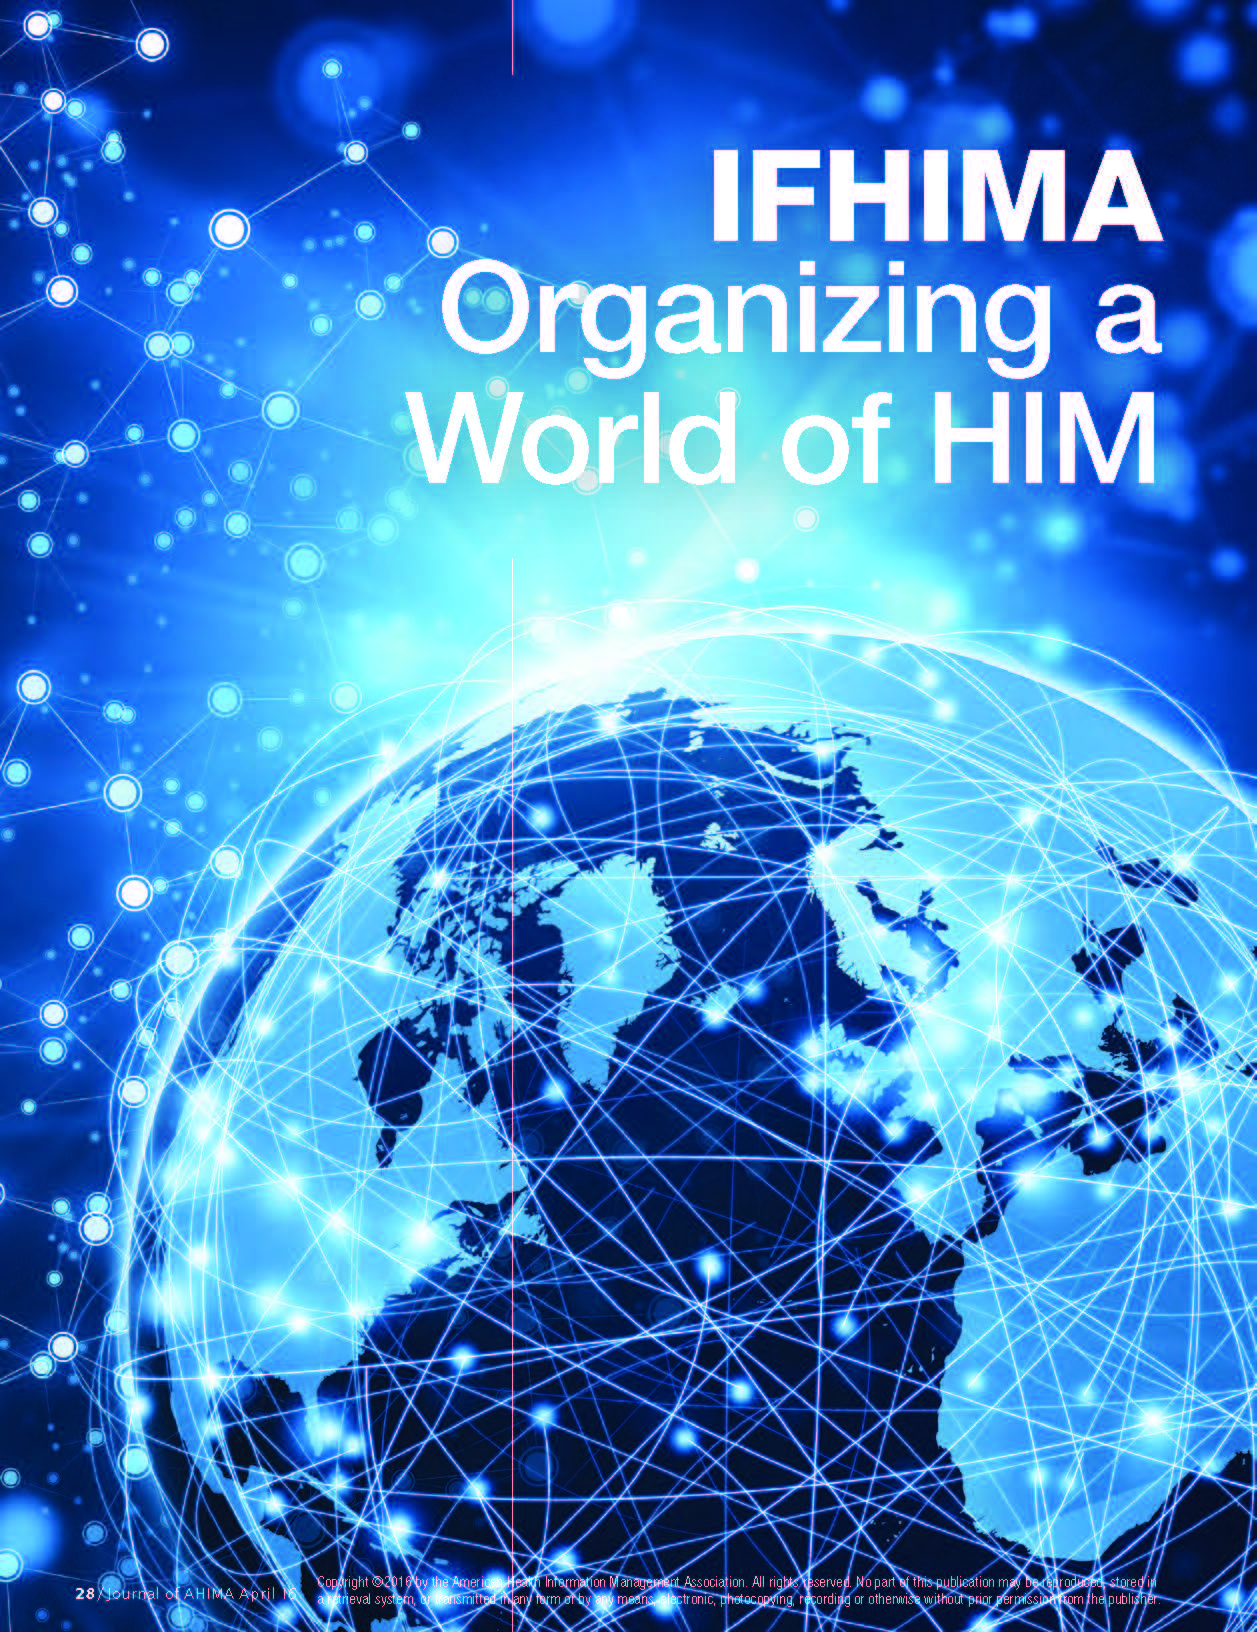 IHMIA Organising a World of HIM